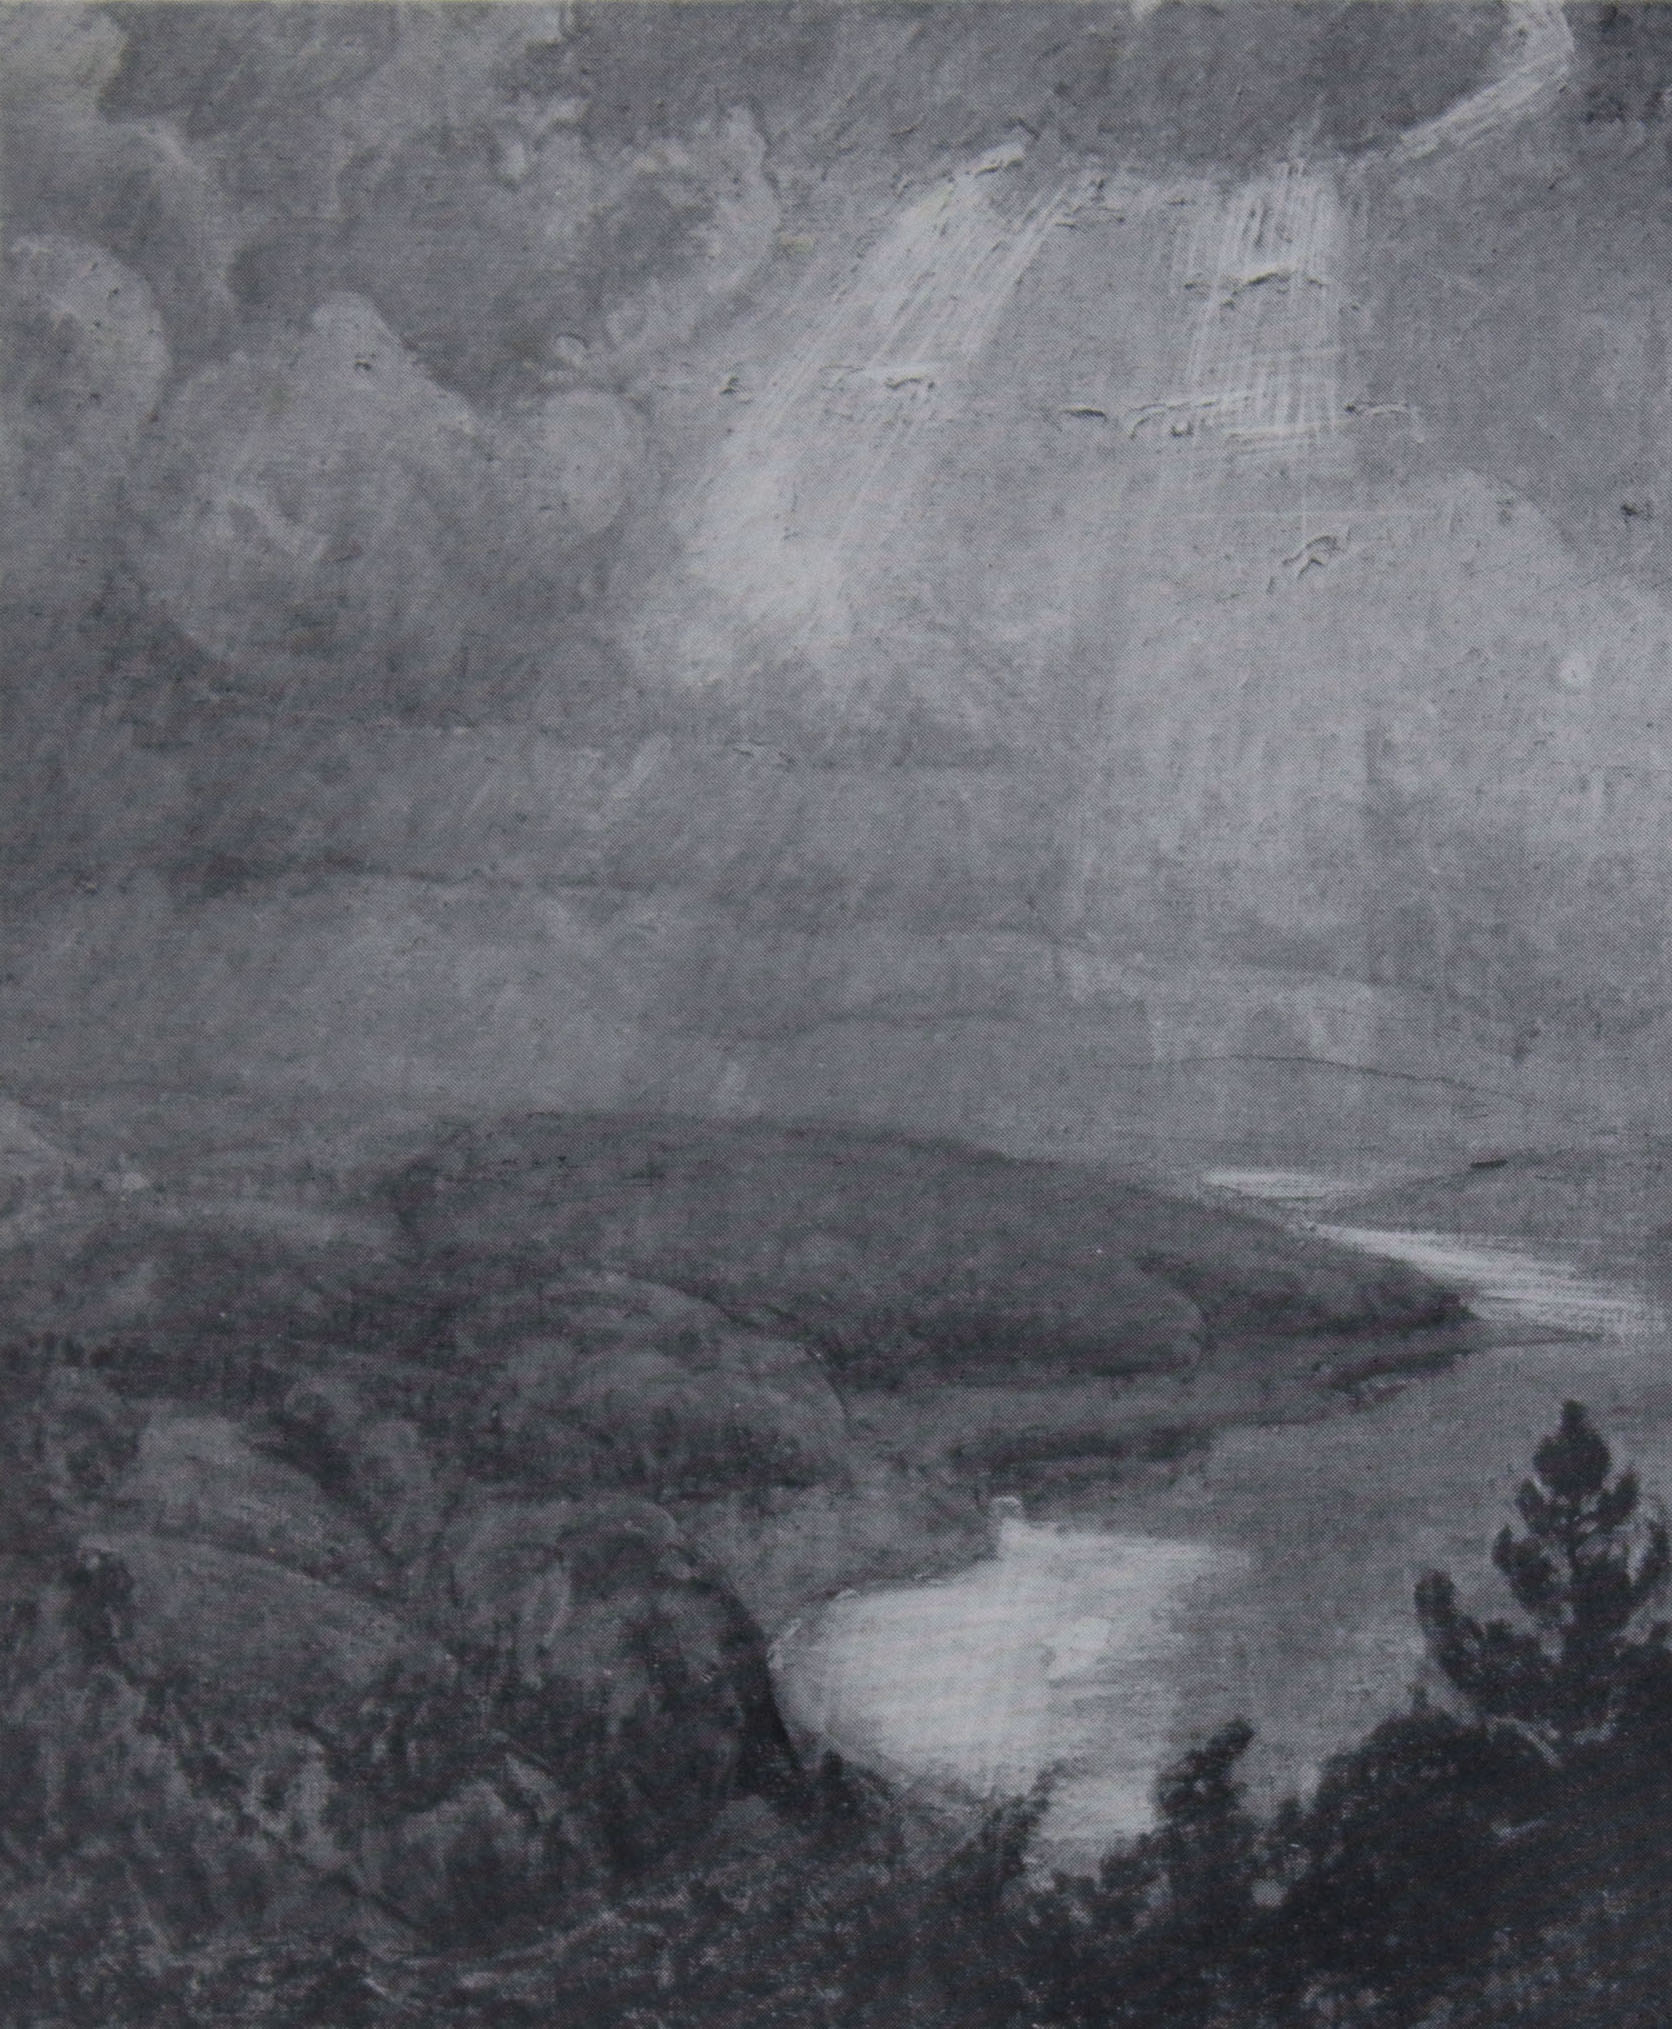 LANDSCAPE BY EINAR WEGENER                                 (ANDREAS SPARRE) IN HIS                                 SISTER'S POSSESSION